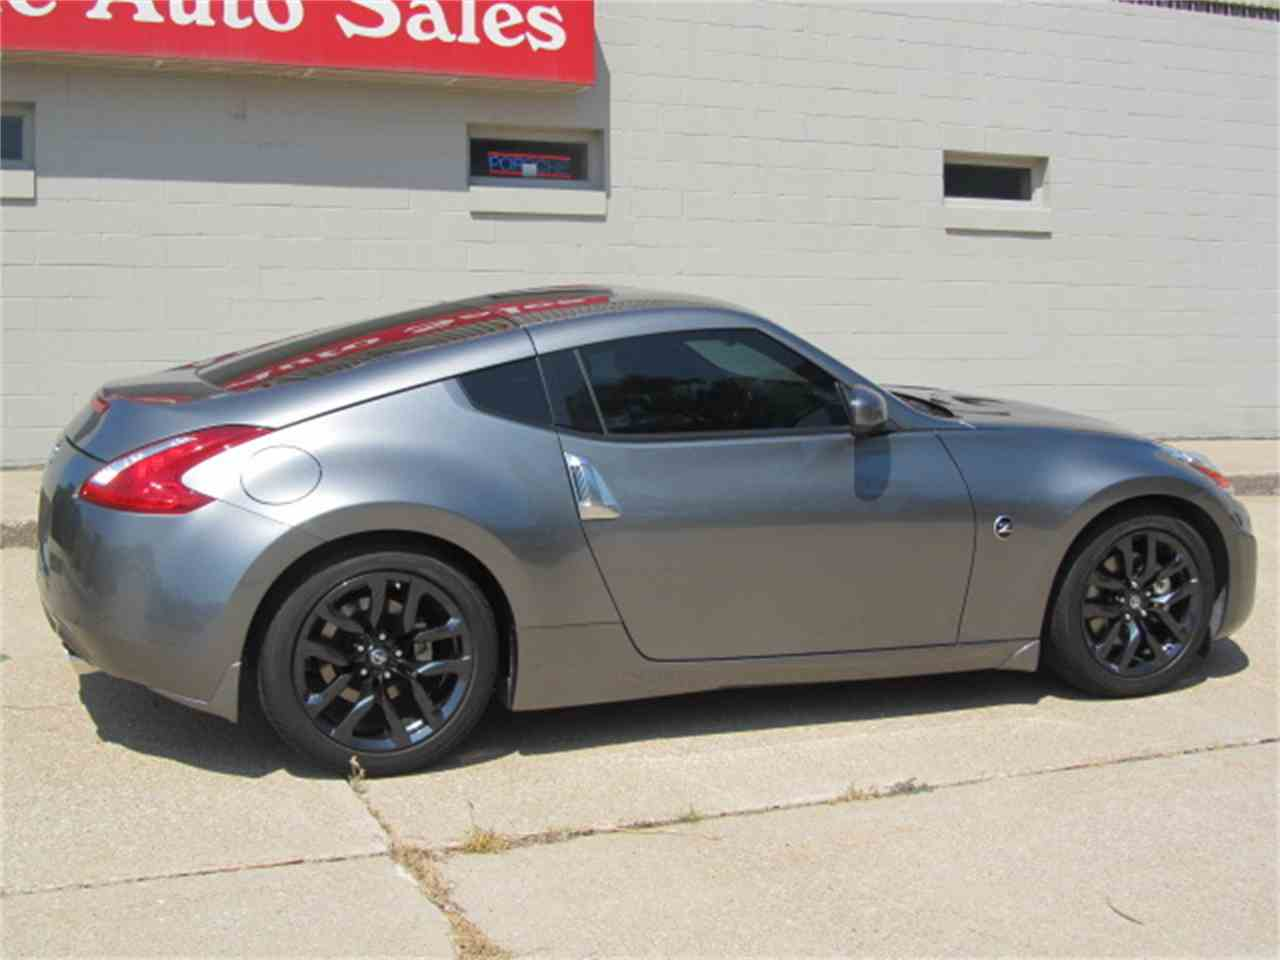 Large Picture of '16 Nissan 370Z located in Omaha Nebraska - $24,900.00 Offered by Classic Auto Sales - LI7Y